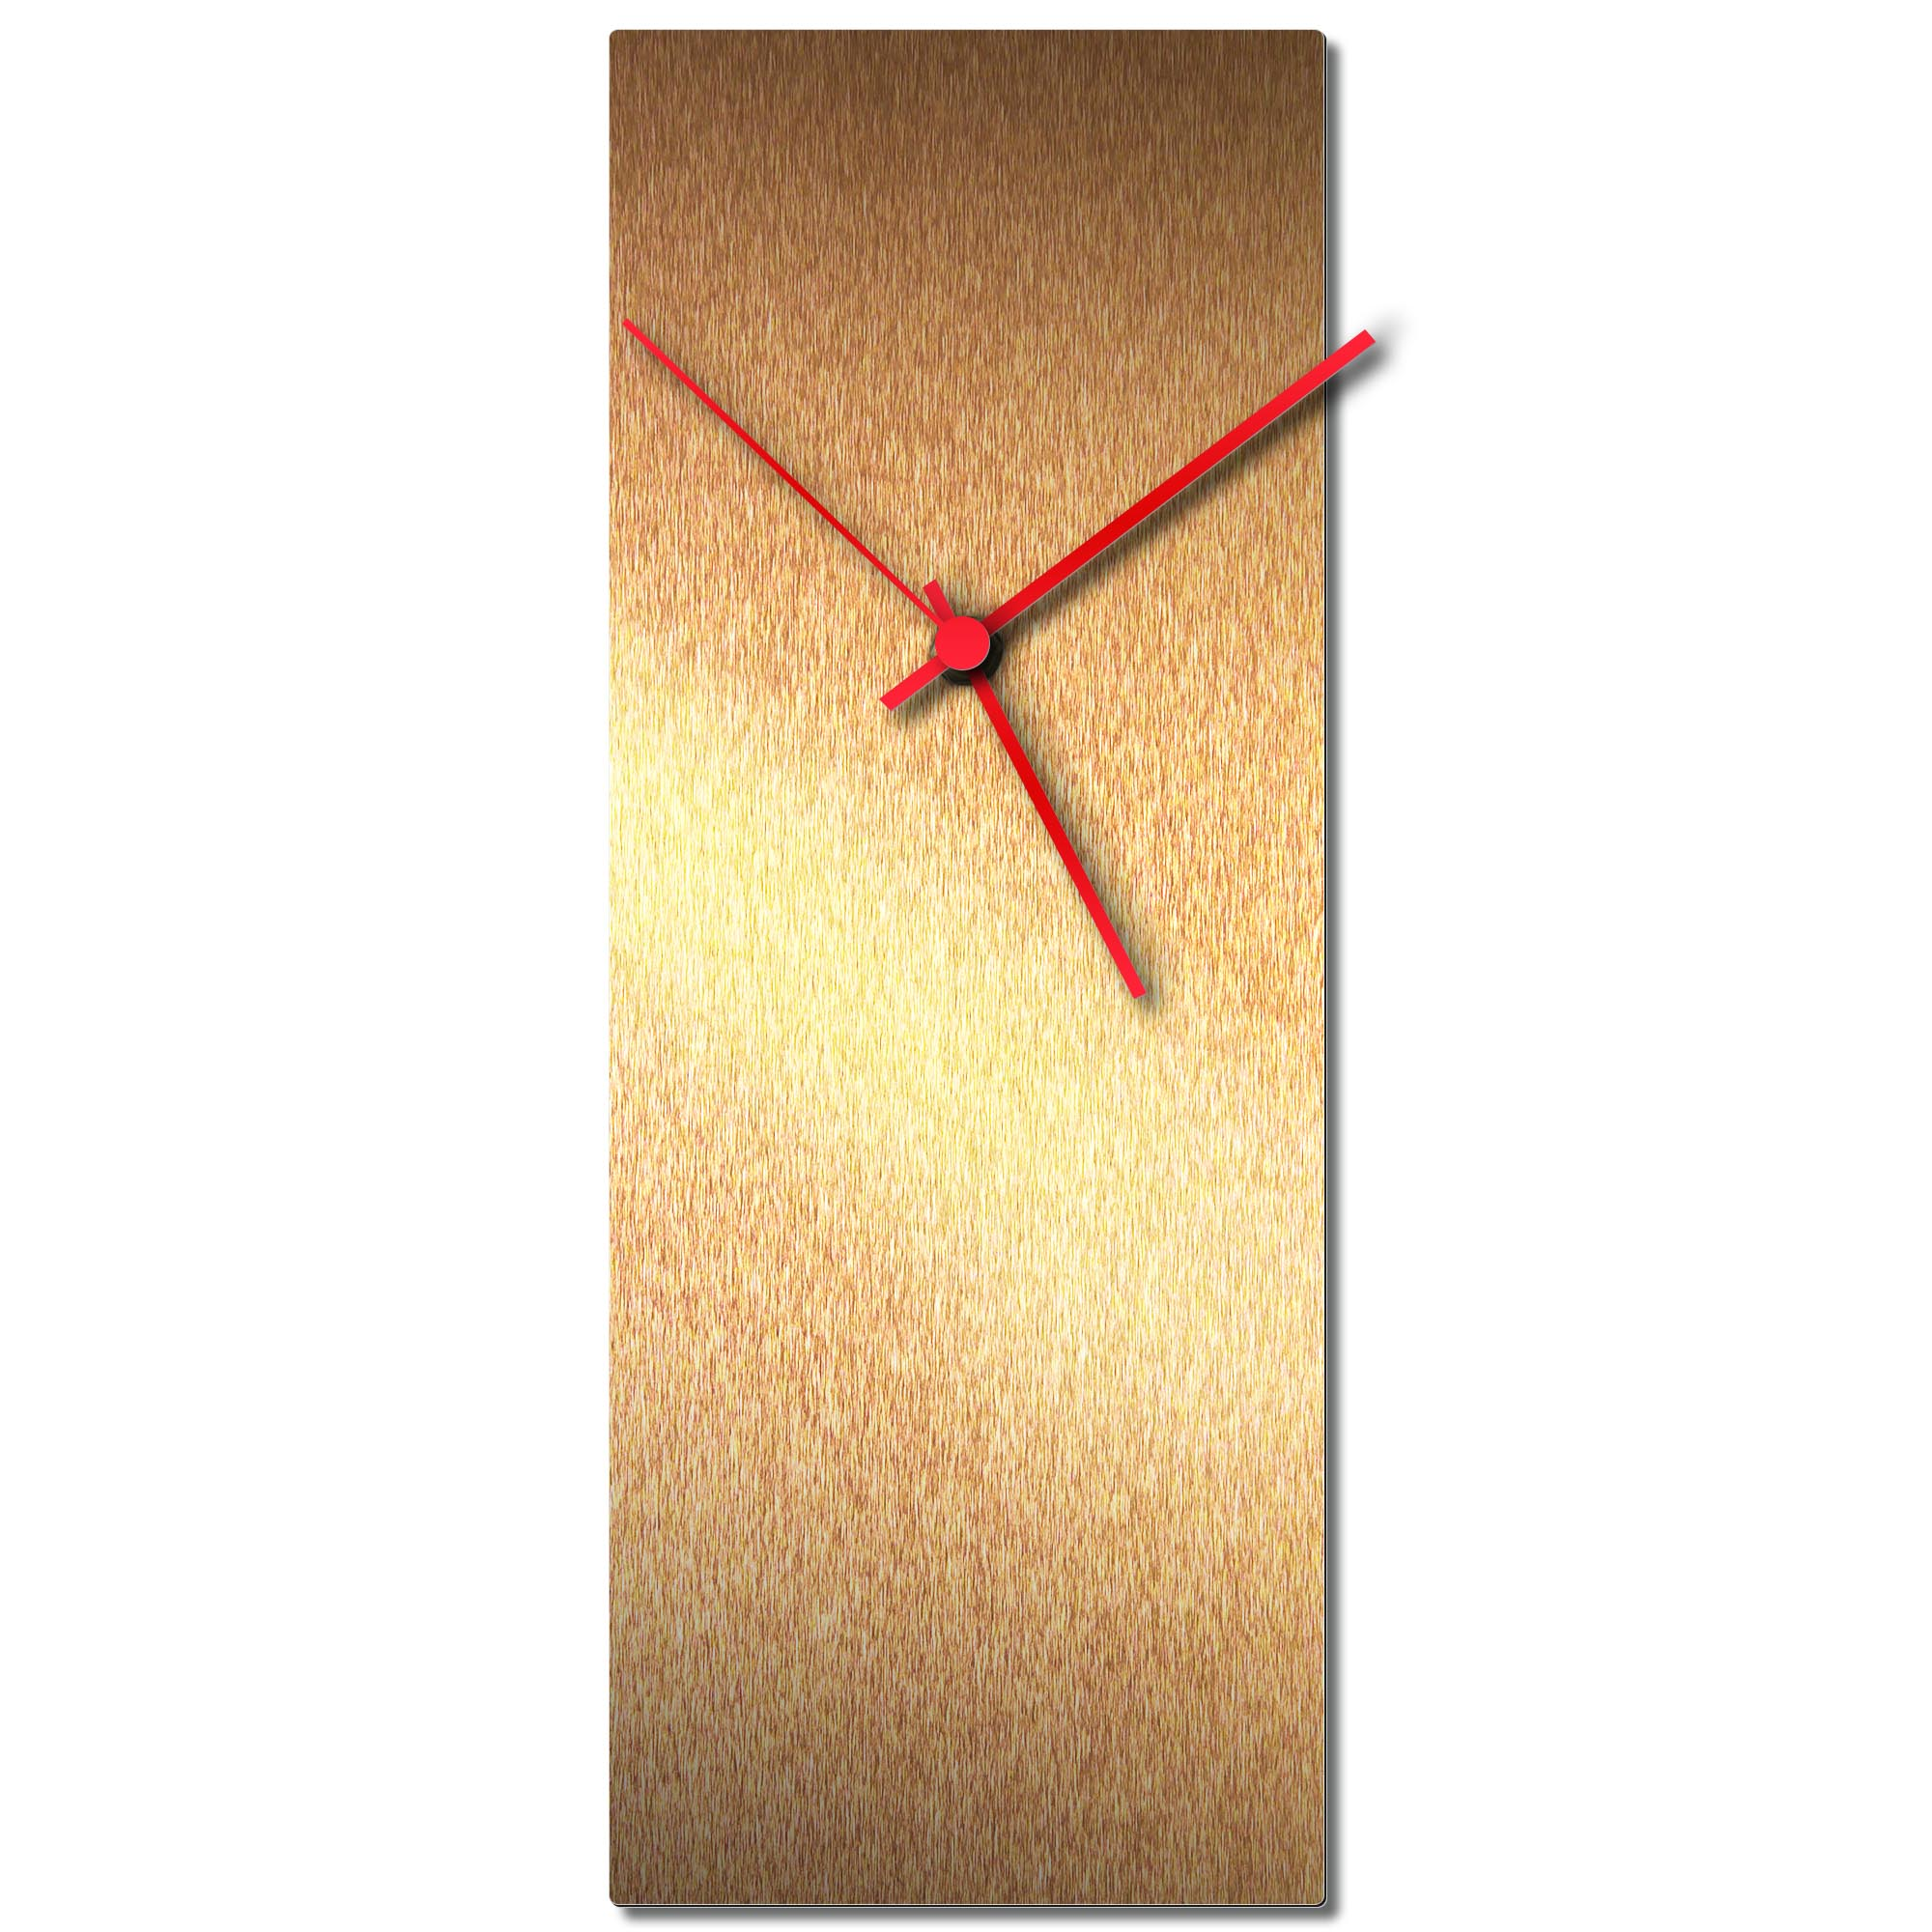 Adam Schwoeppe 'Bronzesmith Clock Red' Midcentury Modern Style Wall Clock